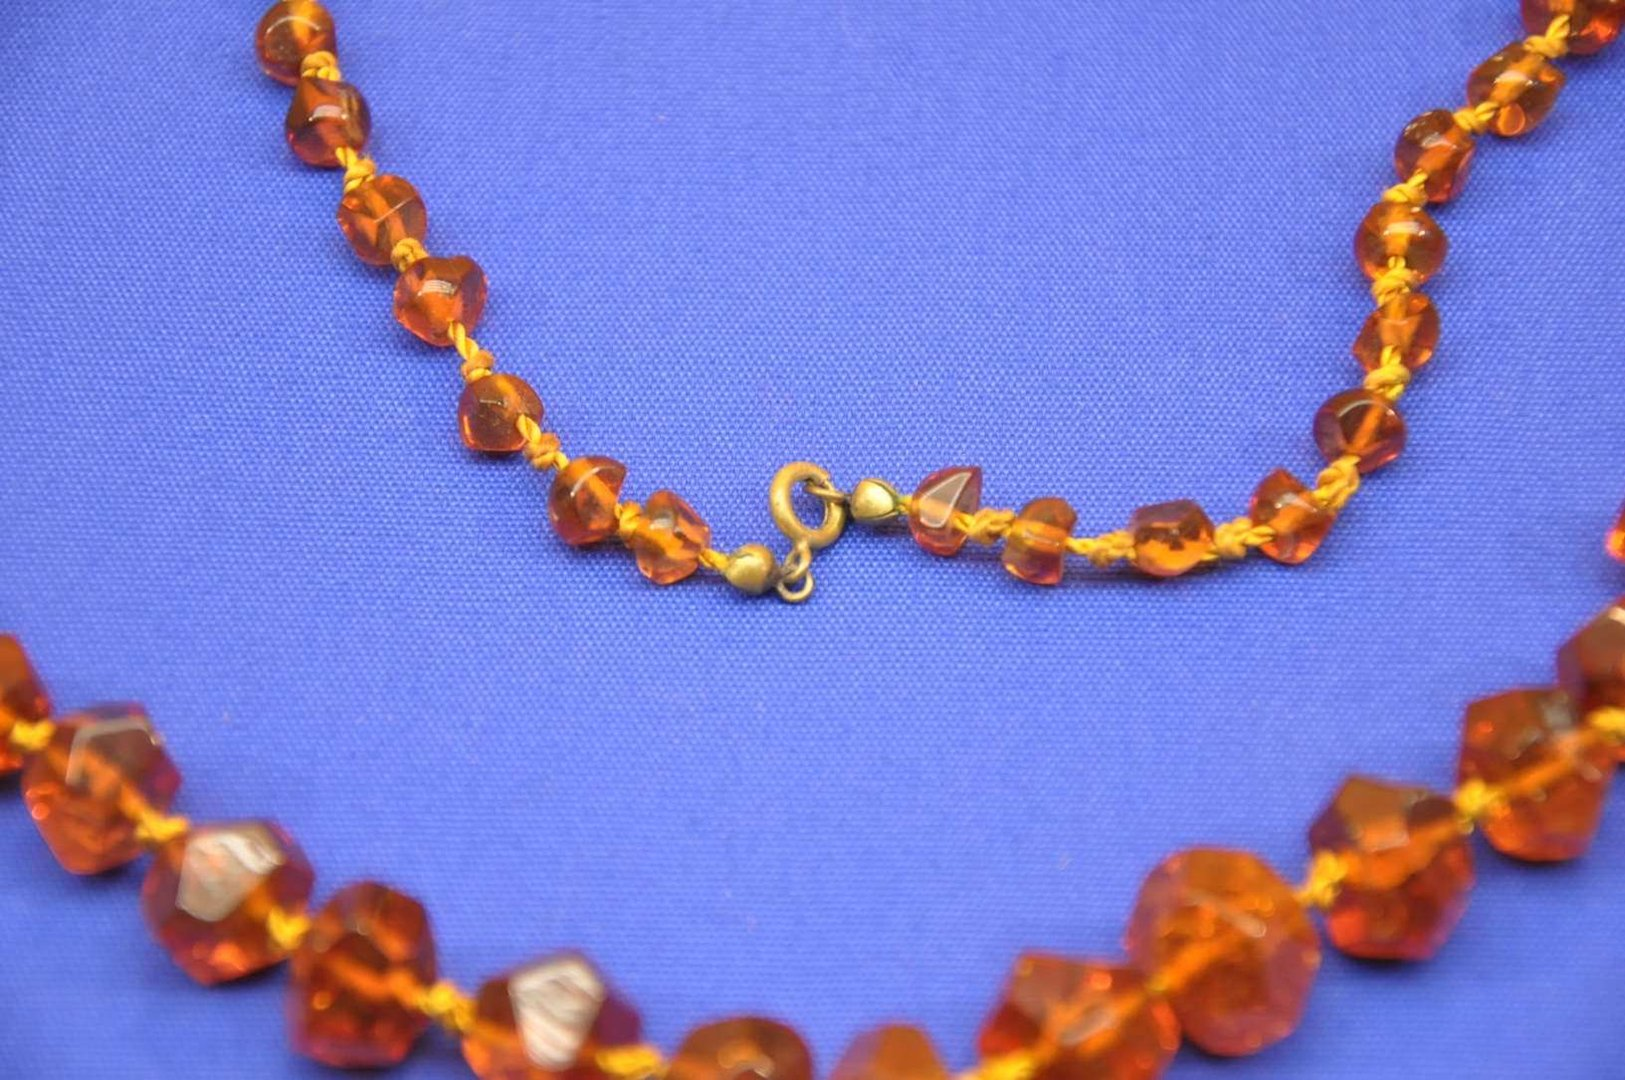 Ambroid amber necklace 69 cm long at kusera online for sale ambroid amber necklace 69 cm long aloadofball Images